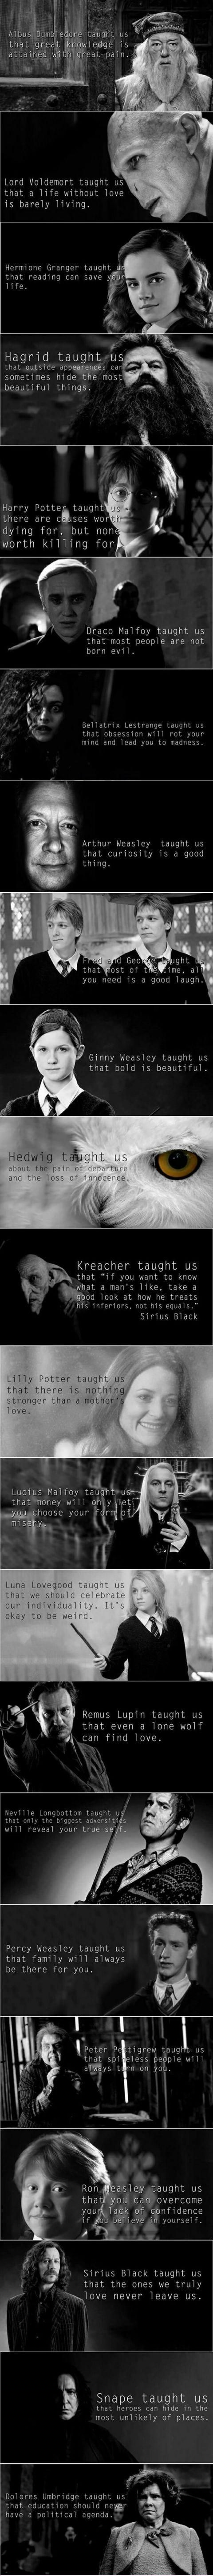 30 Inspirational Harry Potter Quotes #harry #harry potter